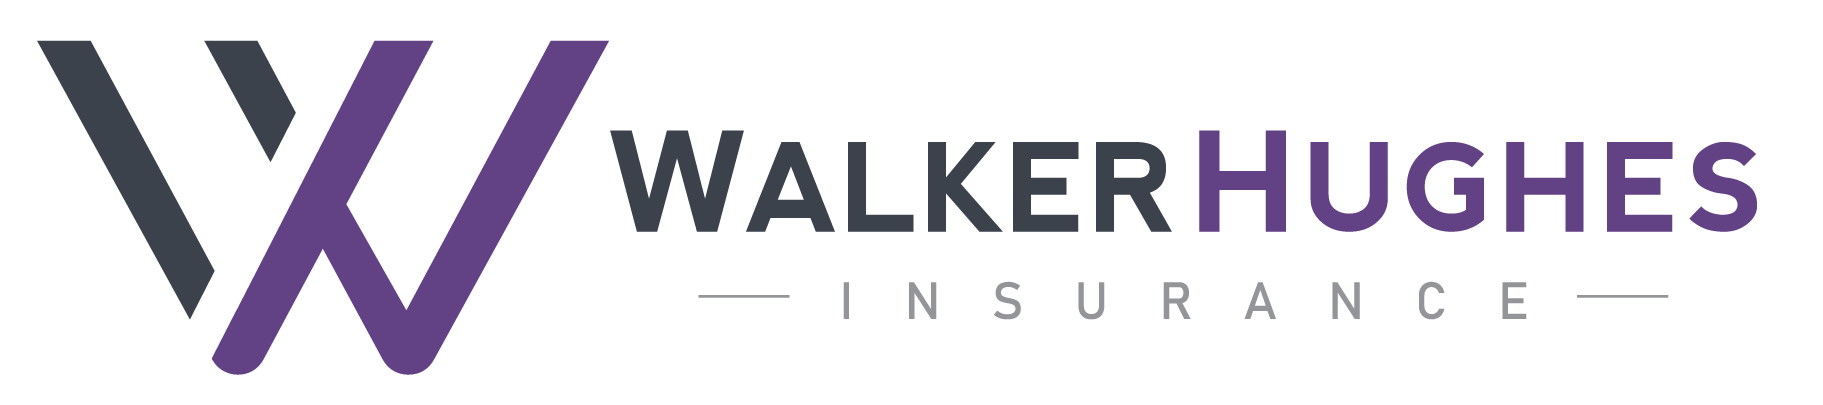 Walker Hughes Insurance